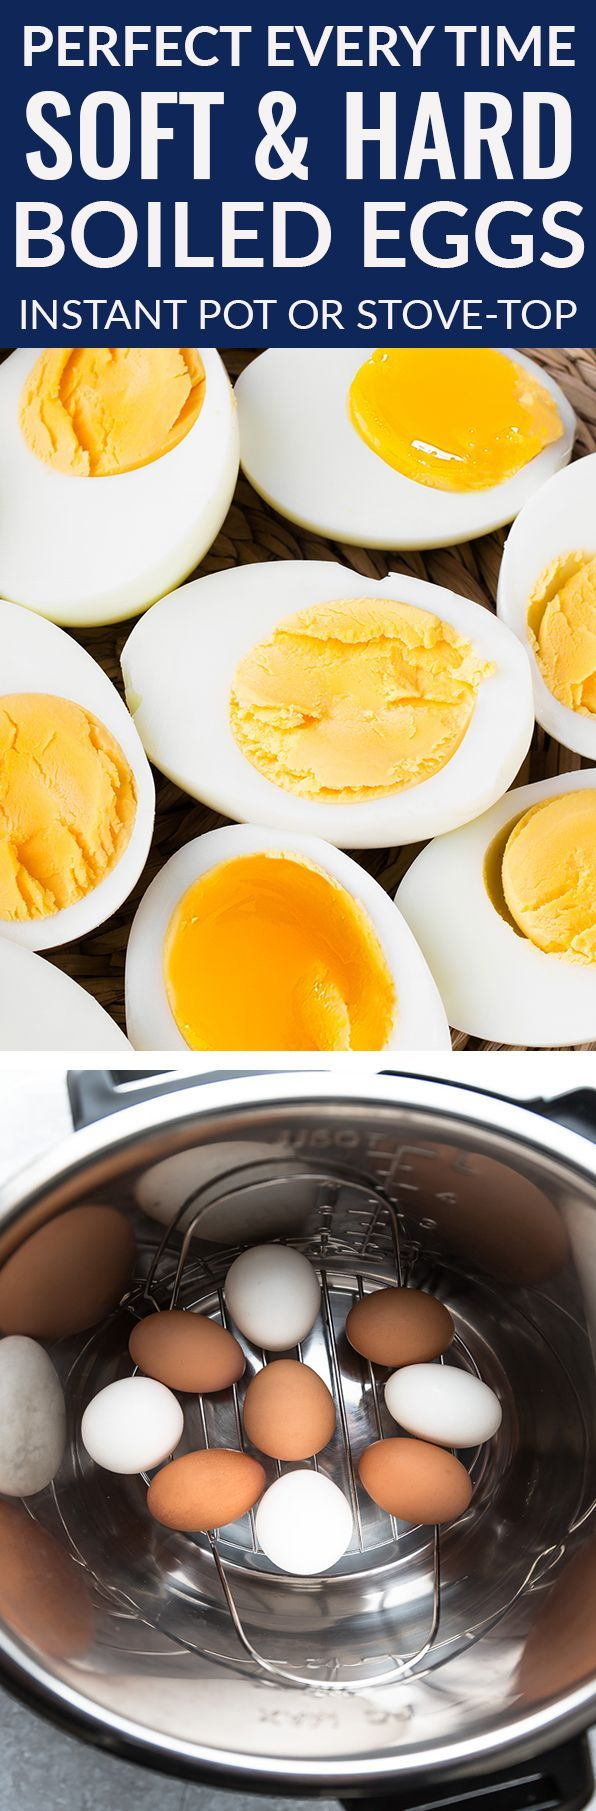 Perfect Hard or Soft Boiled Eggs made in your instant pot pressure cooker or stovetop. Best of all, they are so easy to peel! A healthy paleo, whole 30 and ketogenic option for breakfast, salads, sandwiches, deviled eggs, an after or pre workout snack and Easter eggs. #eggs #instantpot #hardboiled #softboiled #whole30 #paleo #ketogenic